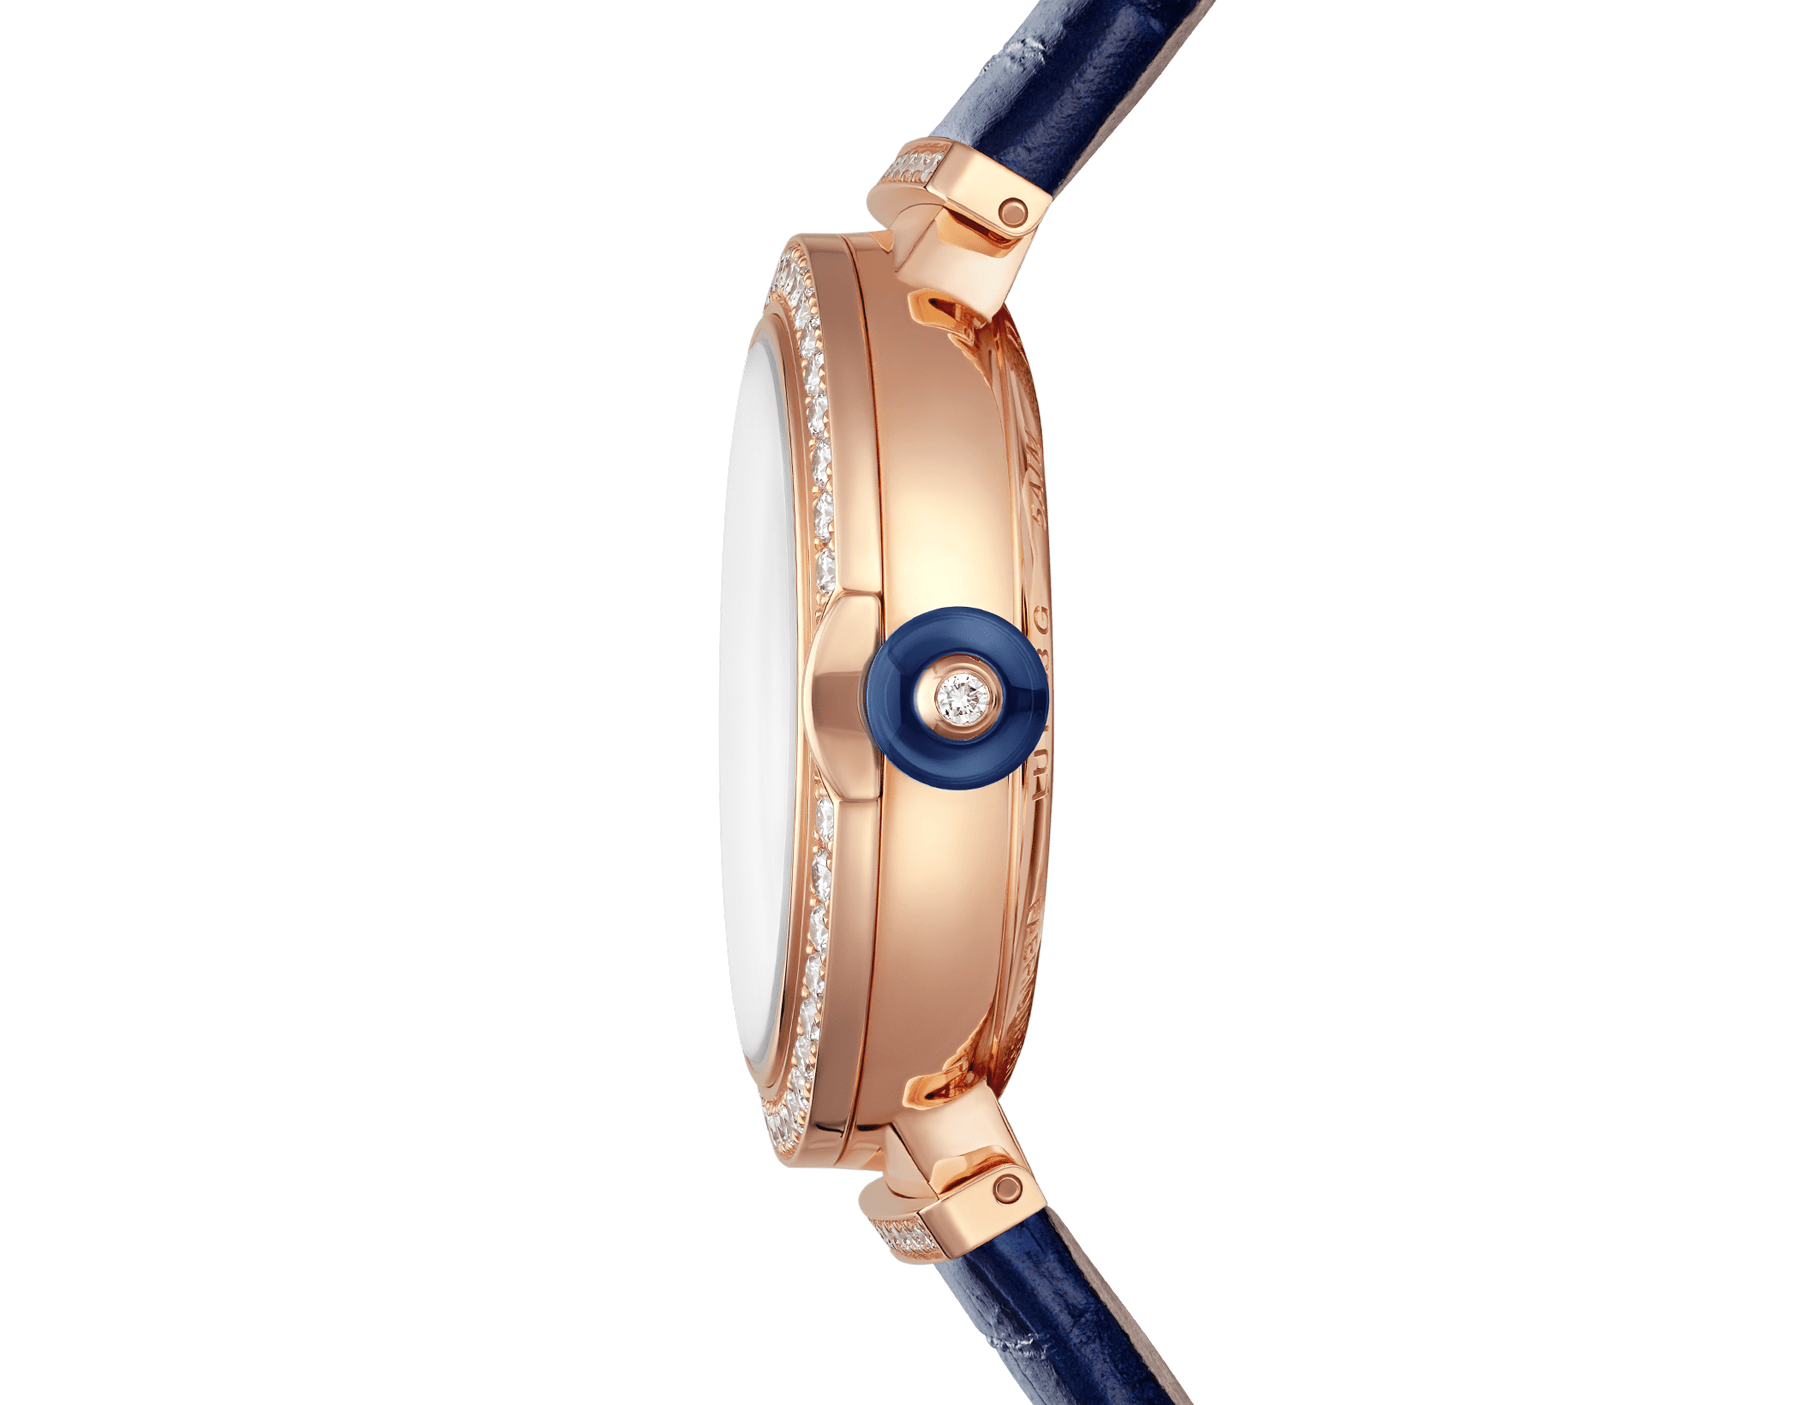 LVCEA watch with mechanical movement and automatic winding, polished 18 kt rose gold case and links both set with round brilliant-cut diamonds, blue aventurine dial and blue alligator bracelet. Water-resistant up to 30 metres. 103341 image 3